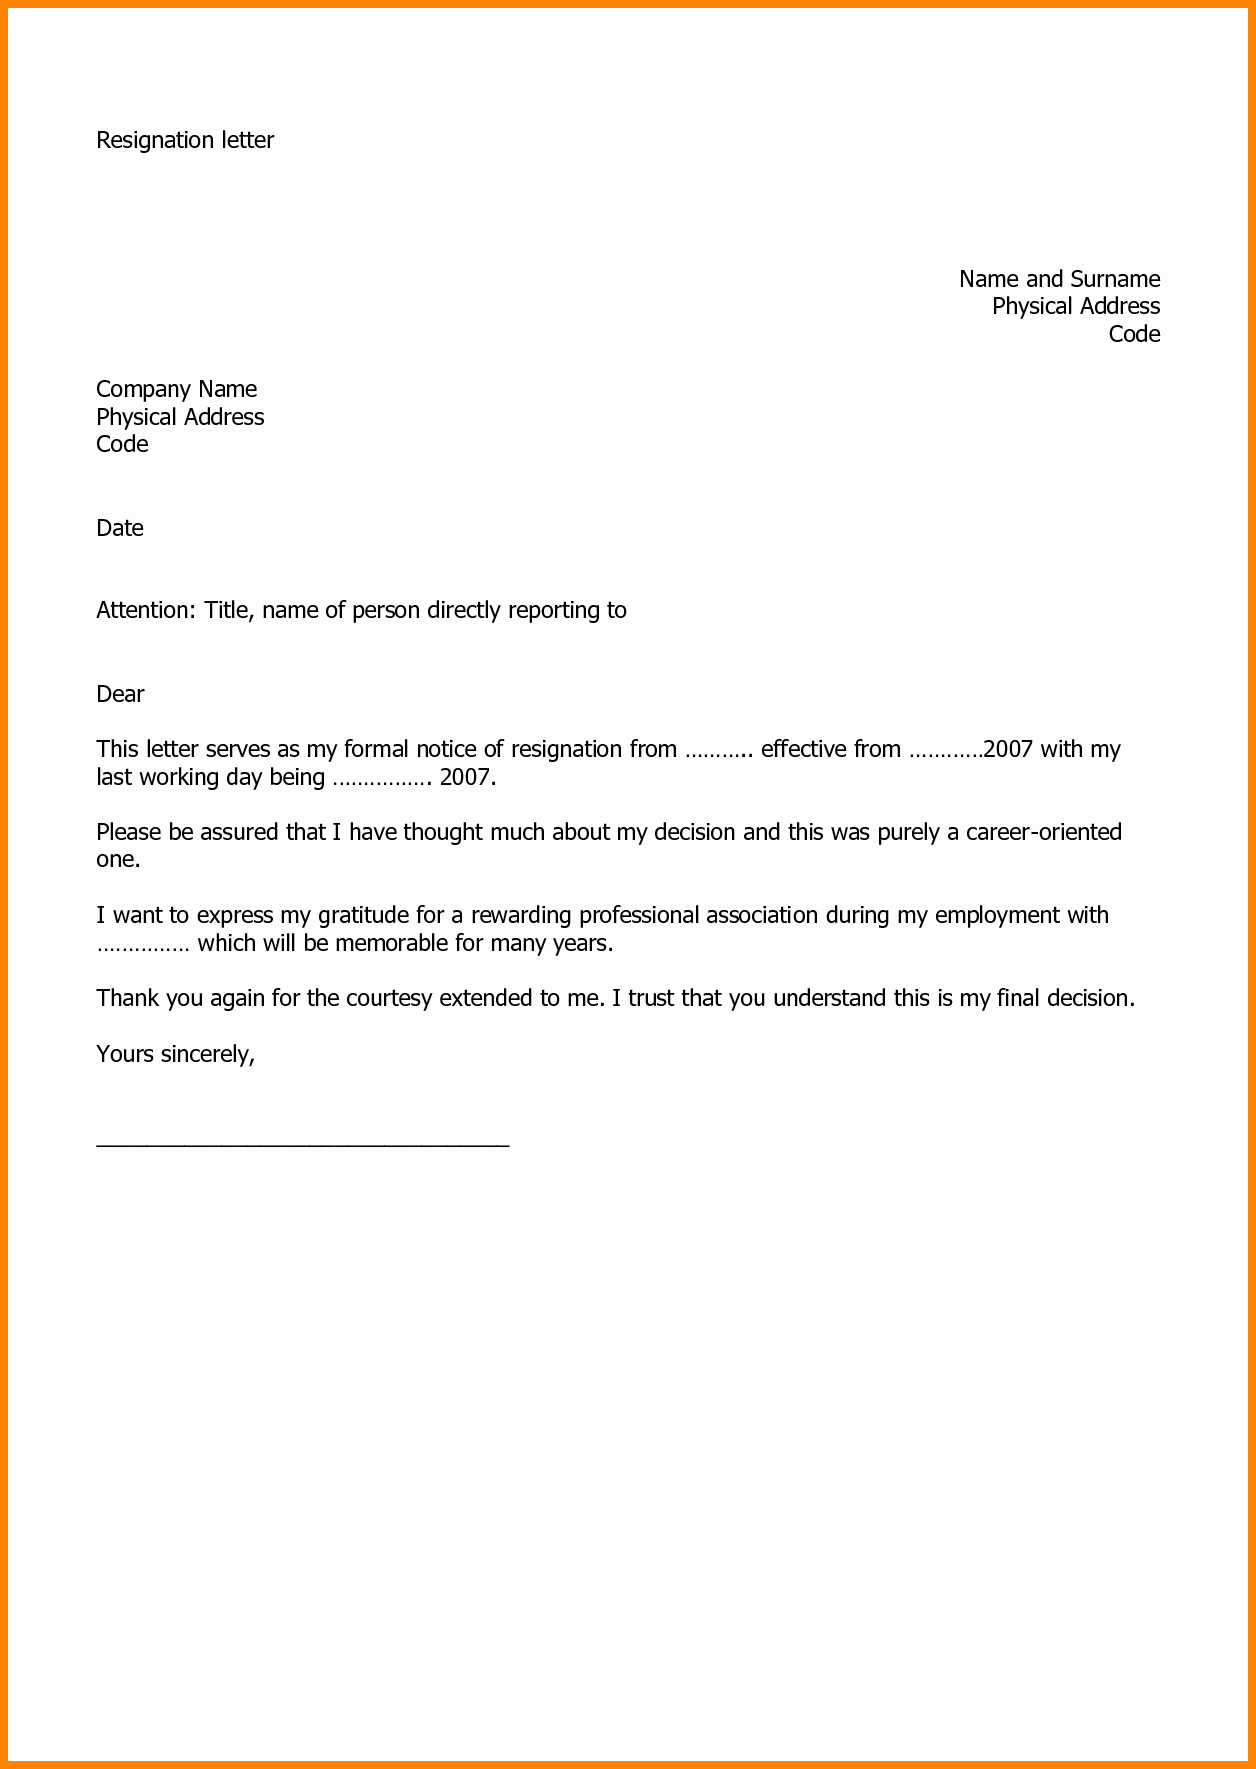 Resignation Letter Sample New Pin by Mike Marischler On Health